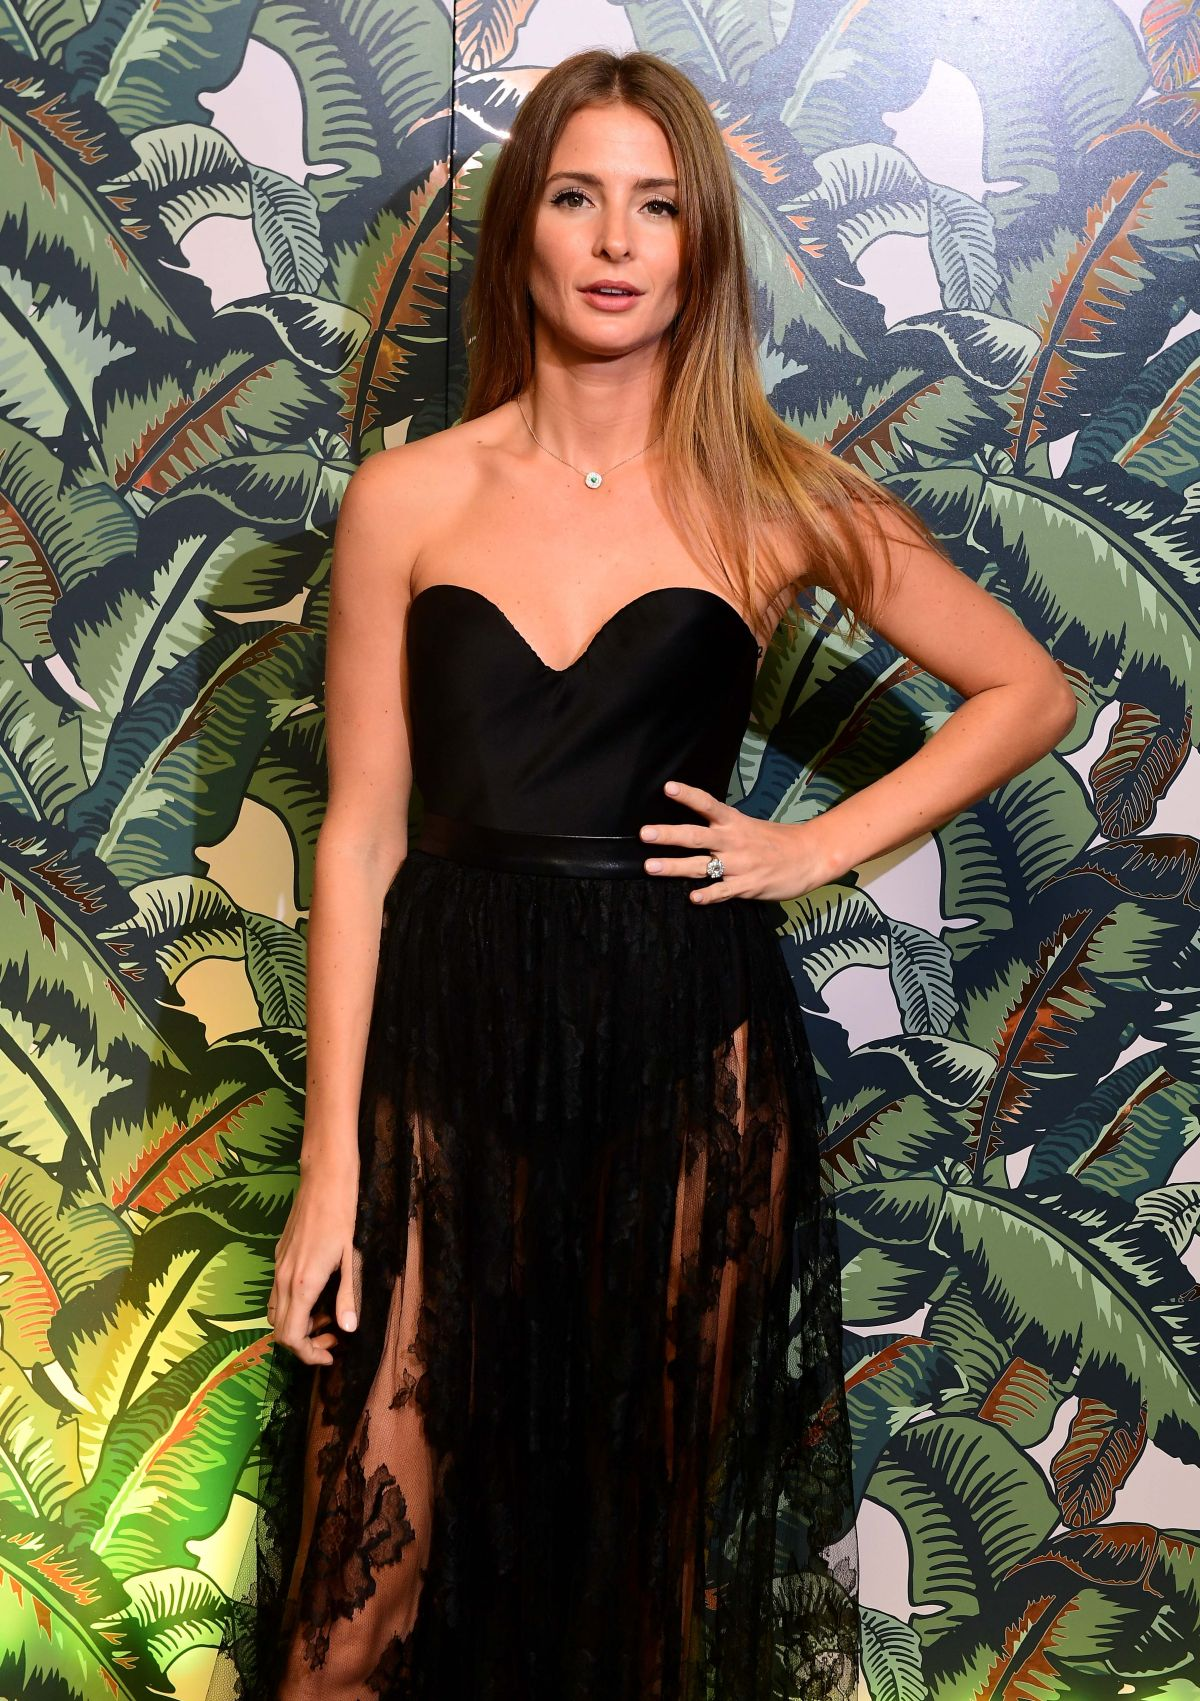 96a48f35a122 MILLIE MACKINTOSH at Dita Von Teese Private Gig in London 11 14 2018